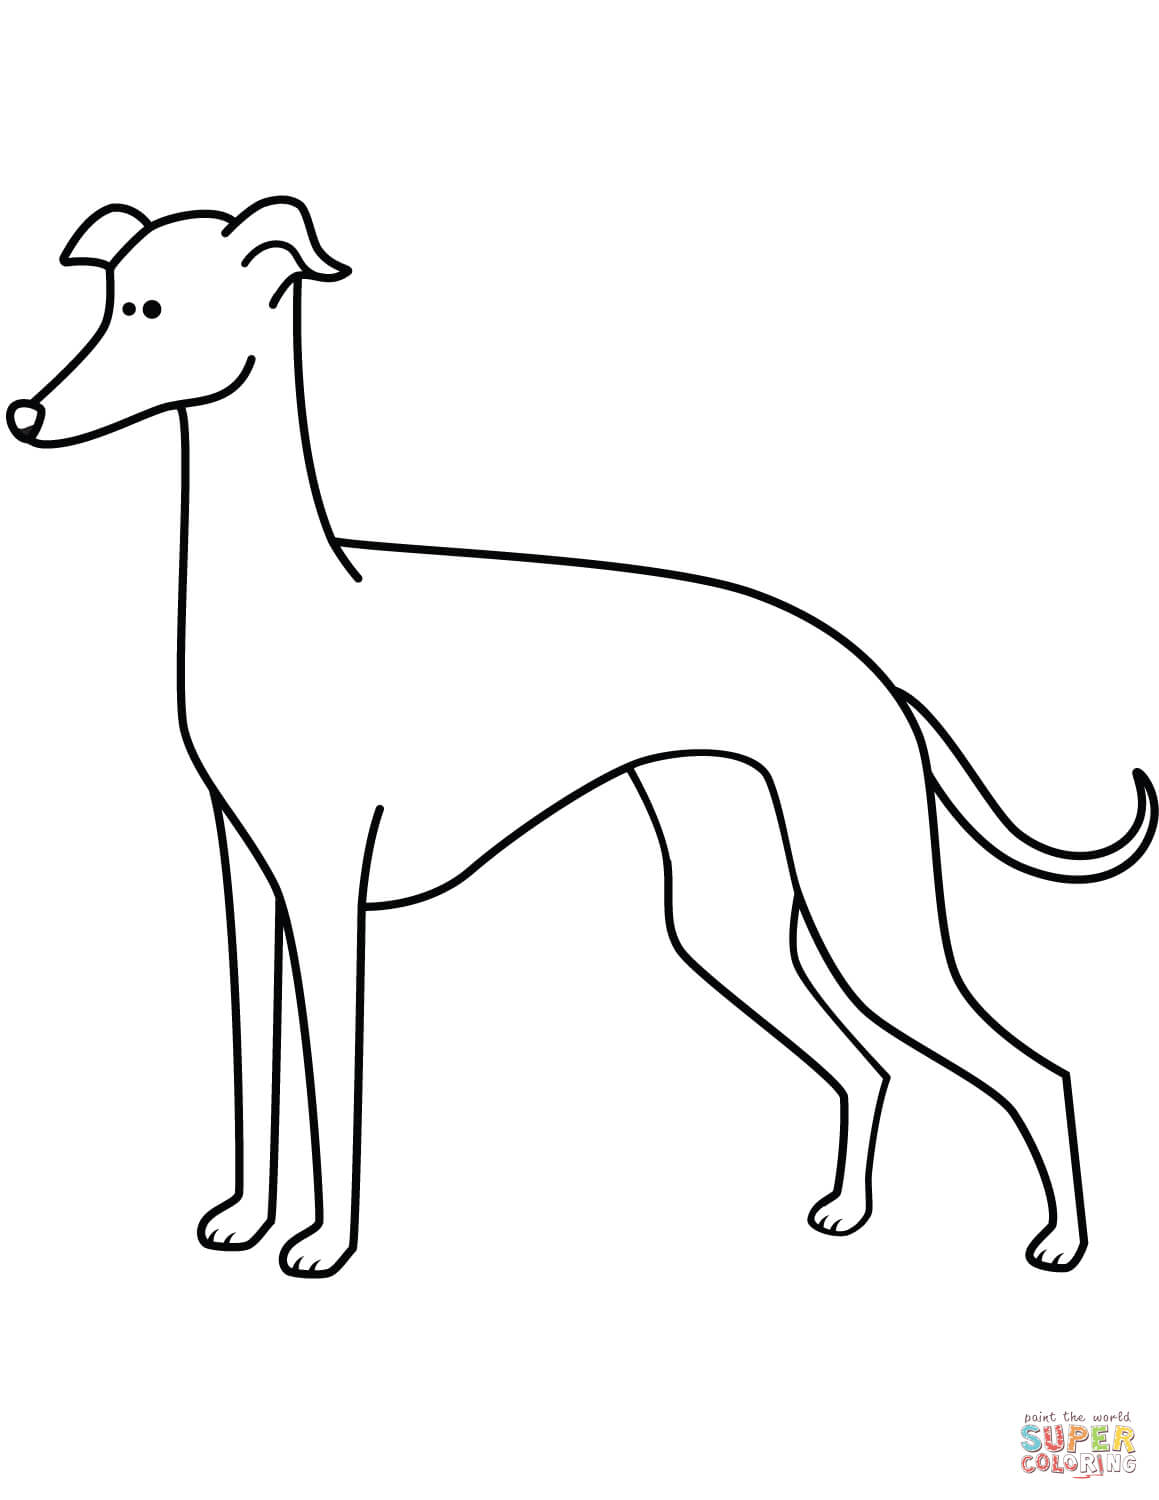 greyhound dog coloring pages greyhound coloring page free dog coloring pages dog greyhound coloring pages